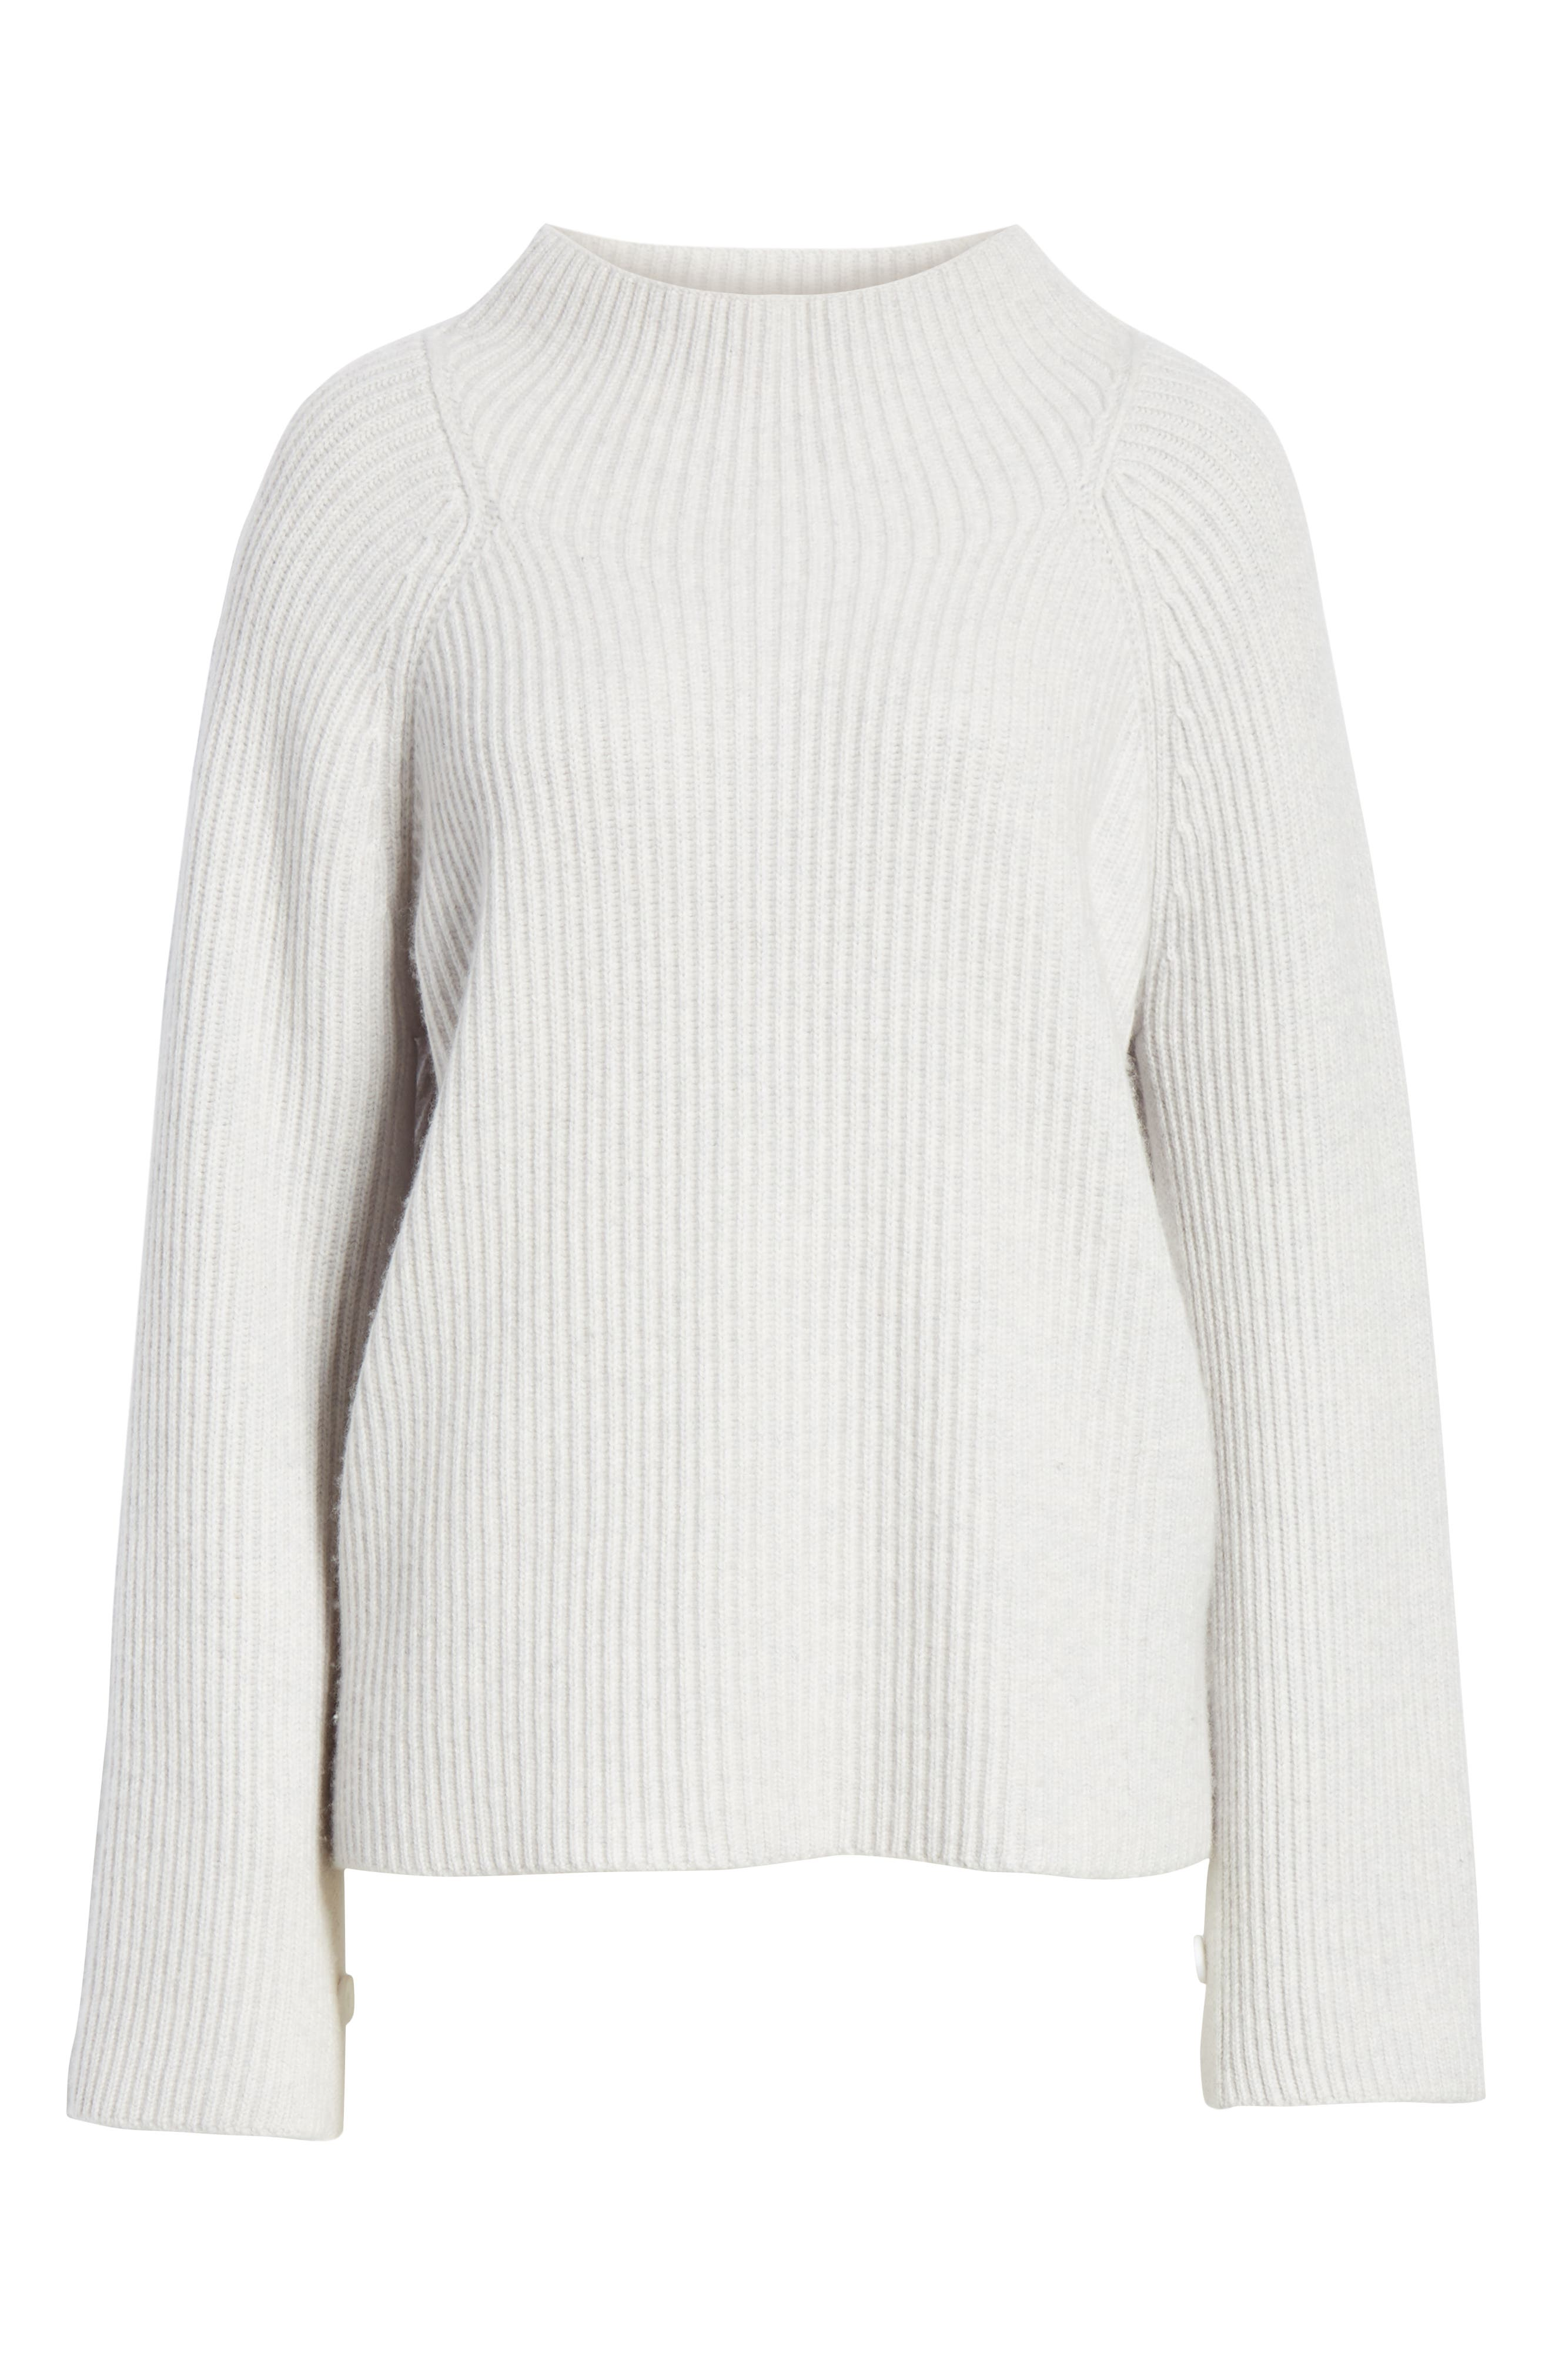 Button Cuff Funnel Neck Sweater,                             Alternate thumbnail 6, color,                             LIGHT HEATHER GREY